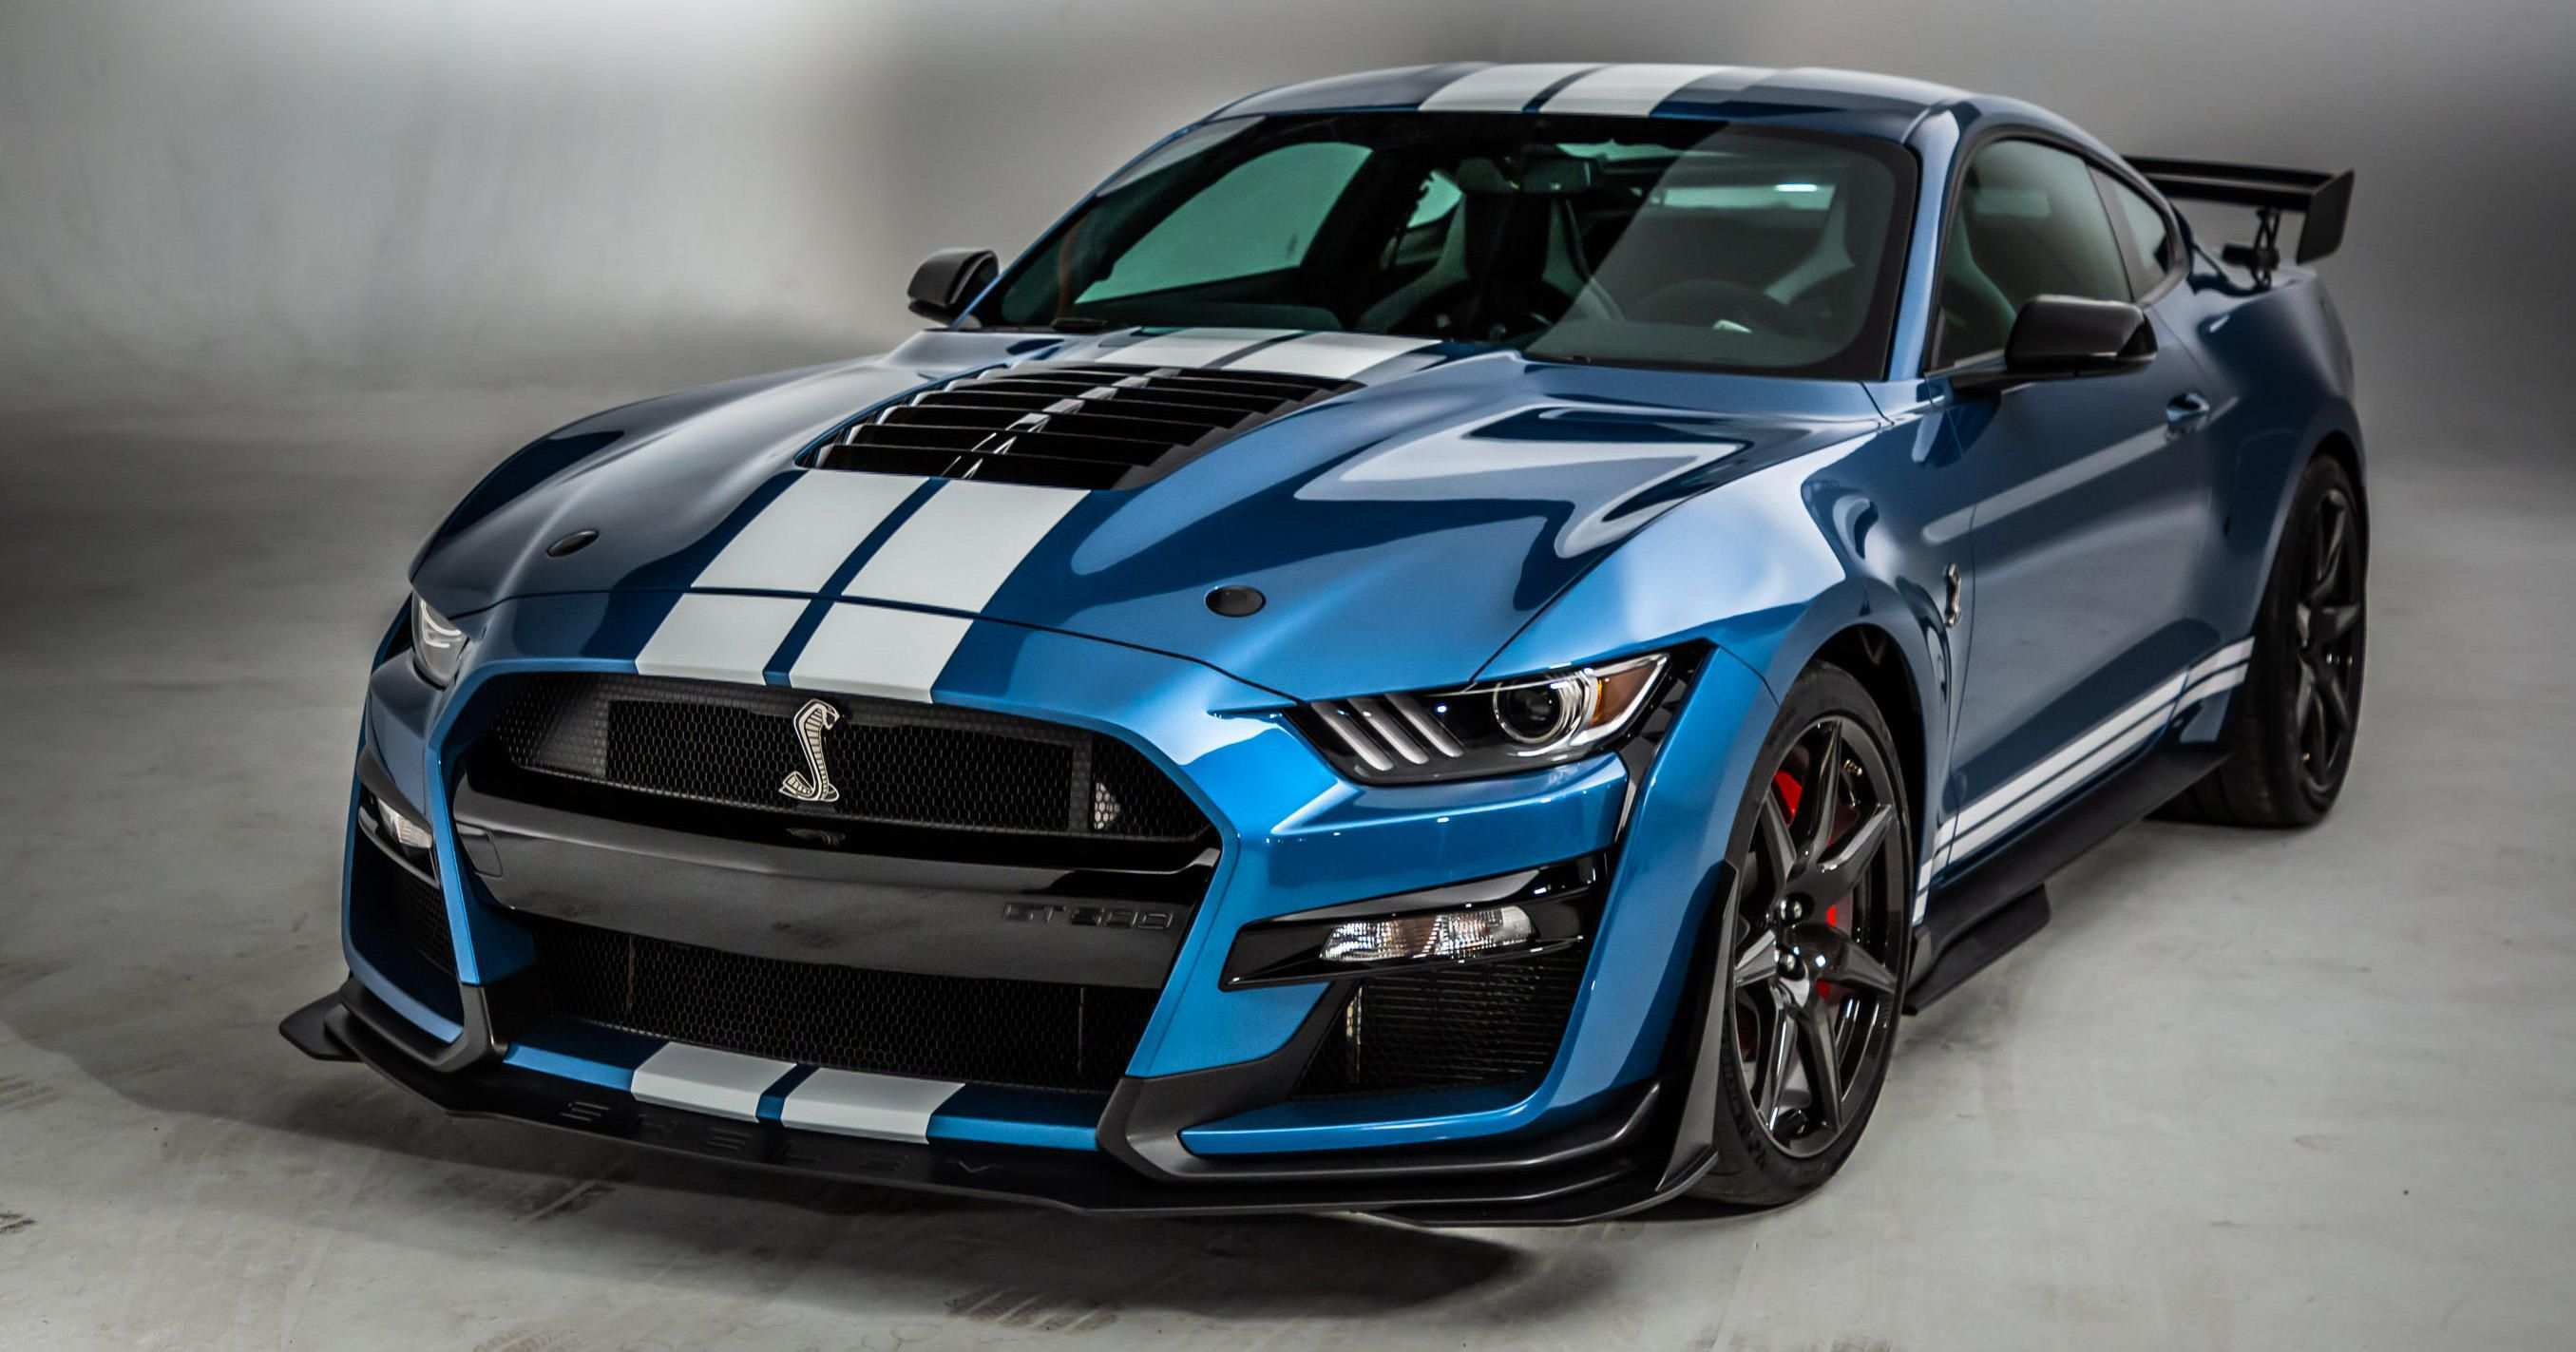 78 All New Ford Mustang 2020 Gt500 Model